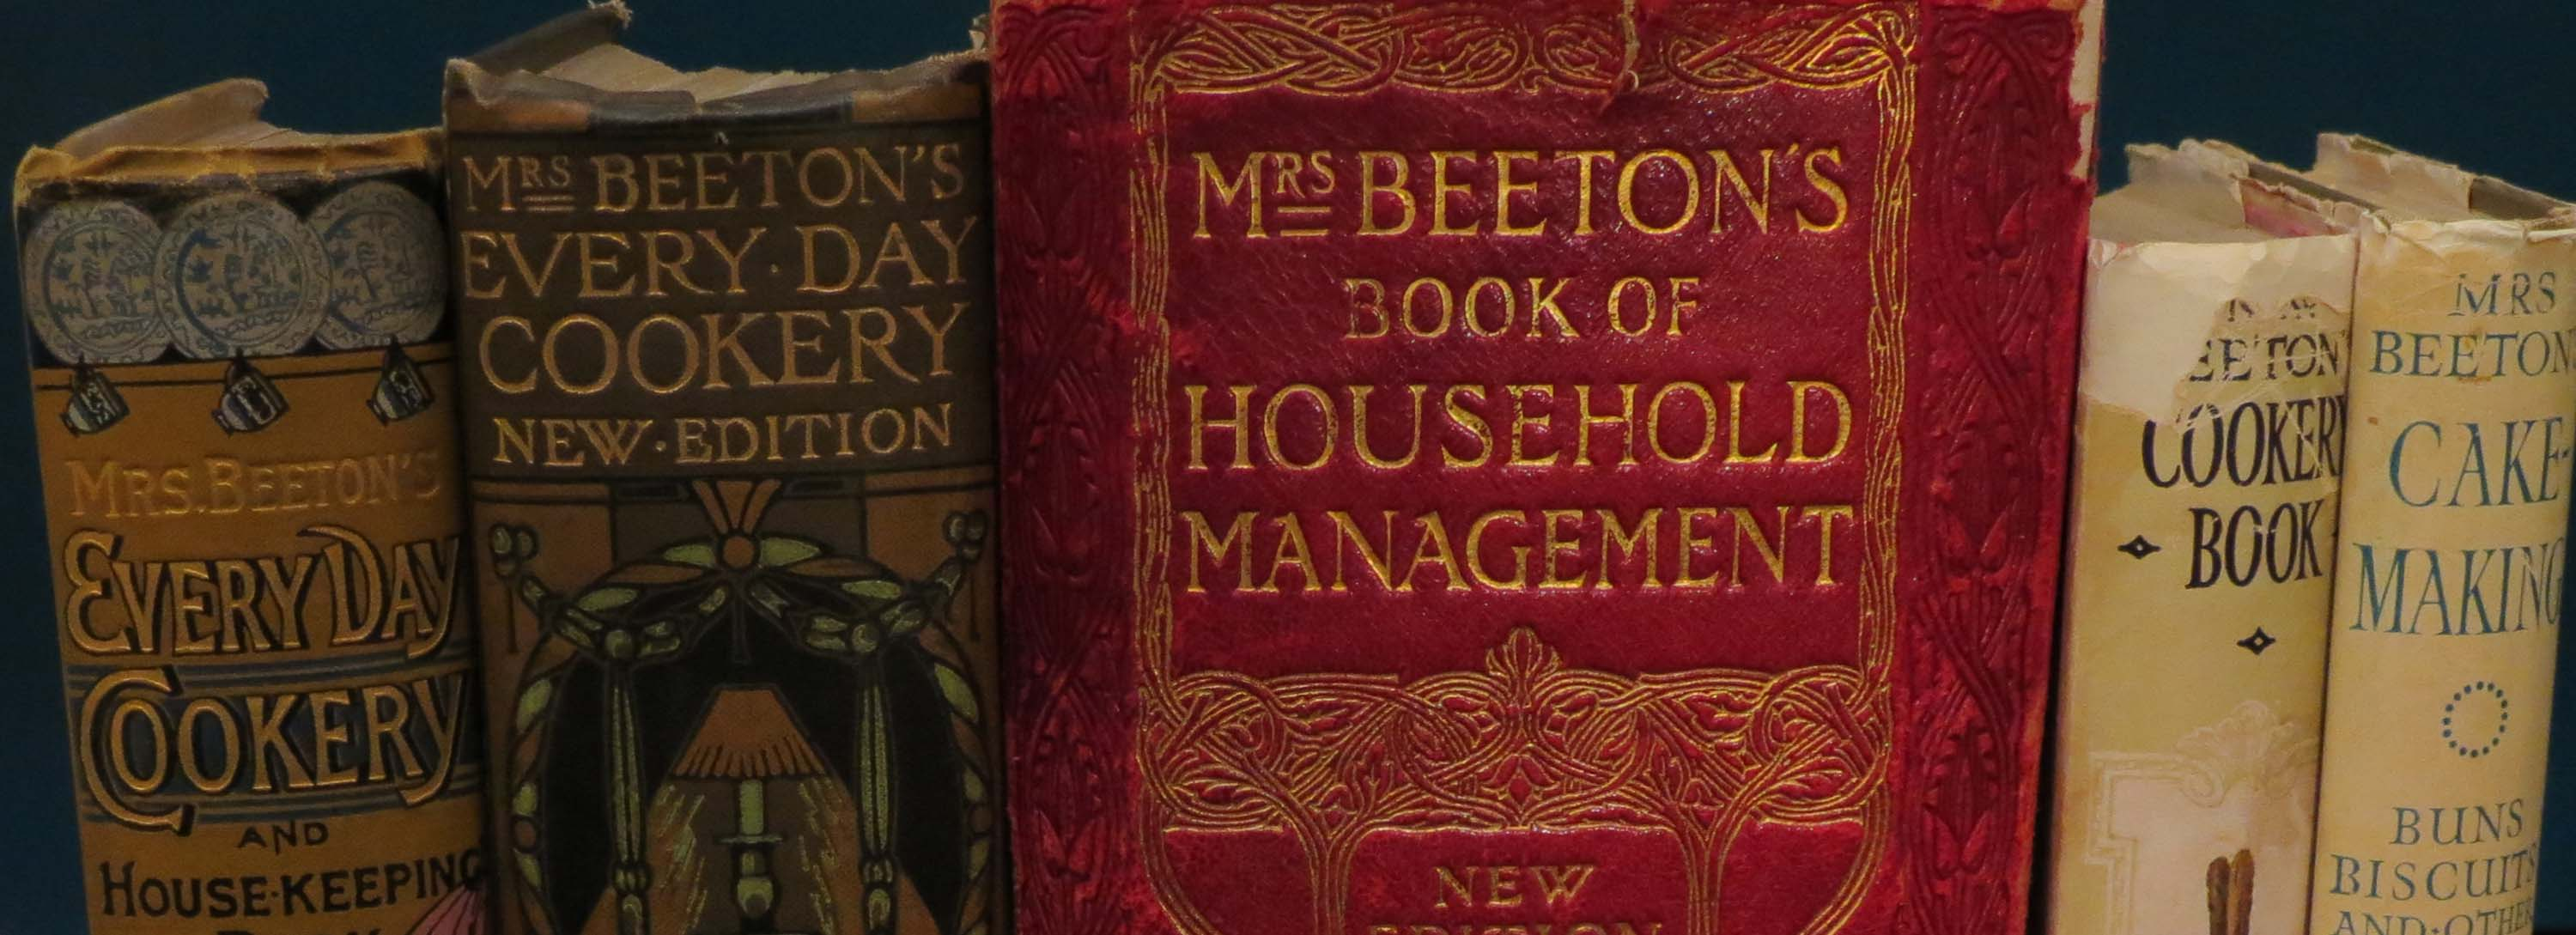 a photo of the spines of various copies of Mrs Beeton's Book of Household Management